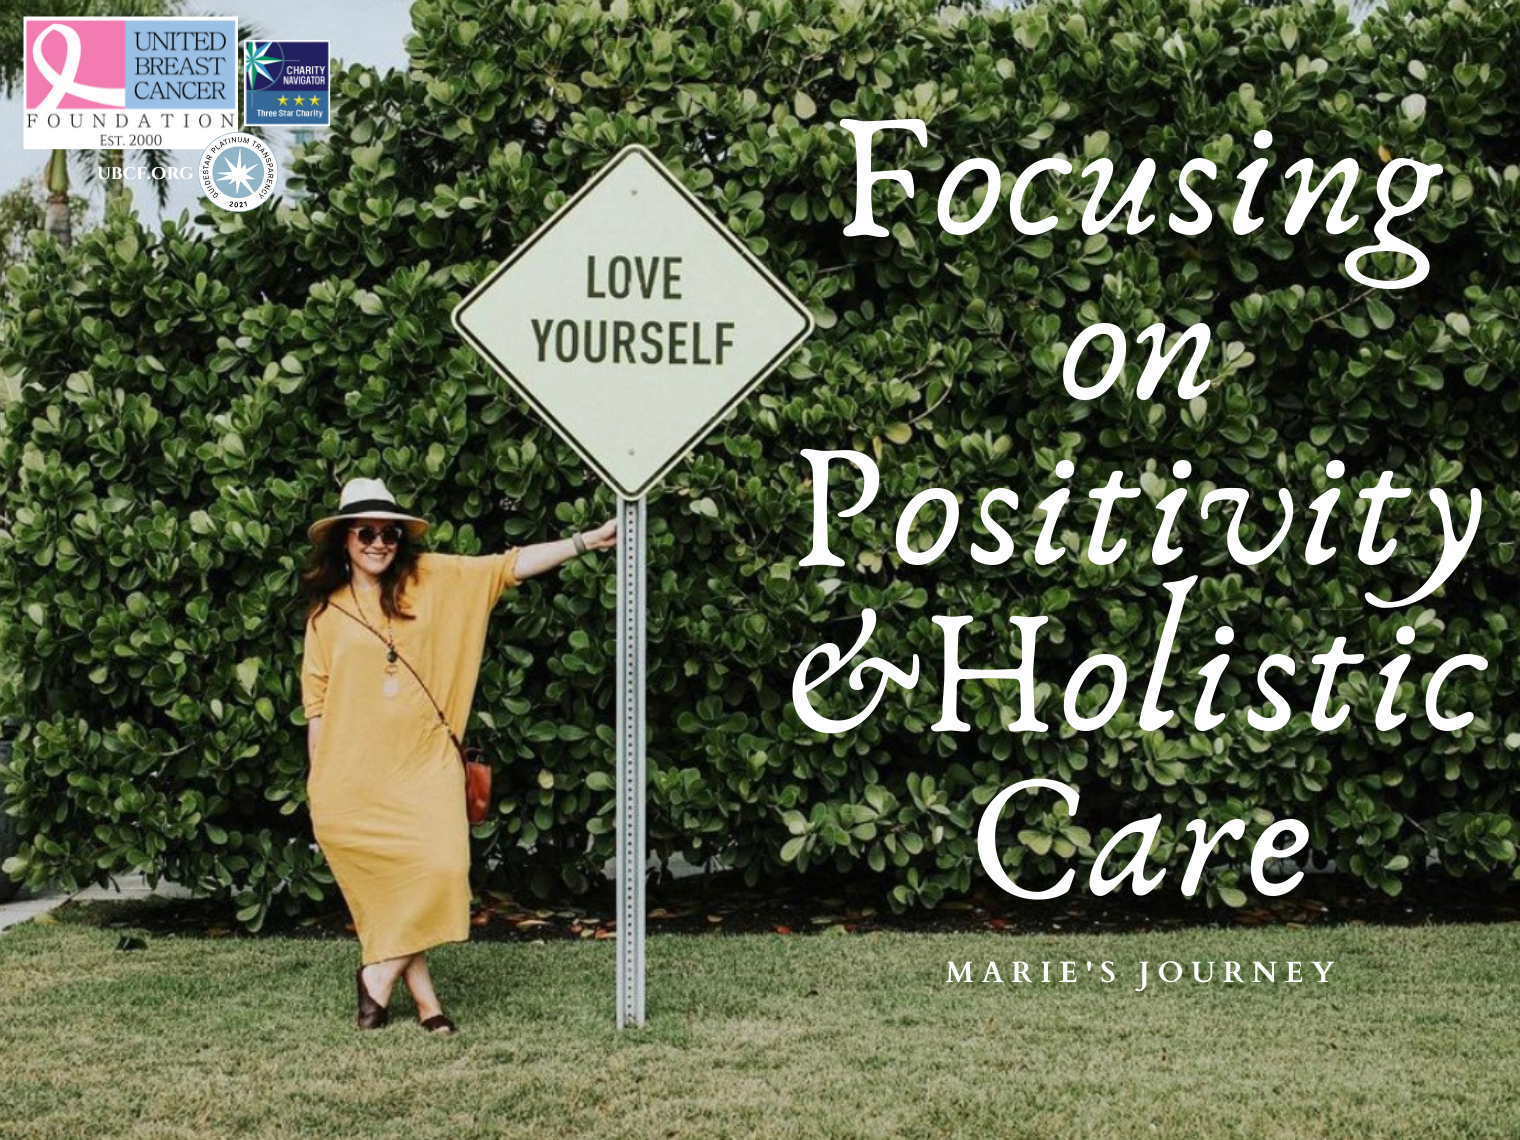 This image features Marie standing in front of a 'love yourself' sign. She is focusing on positivity and holistic care.